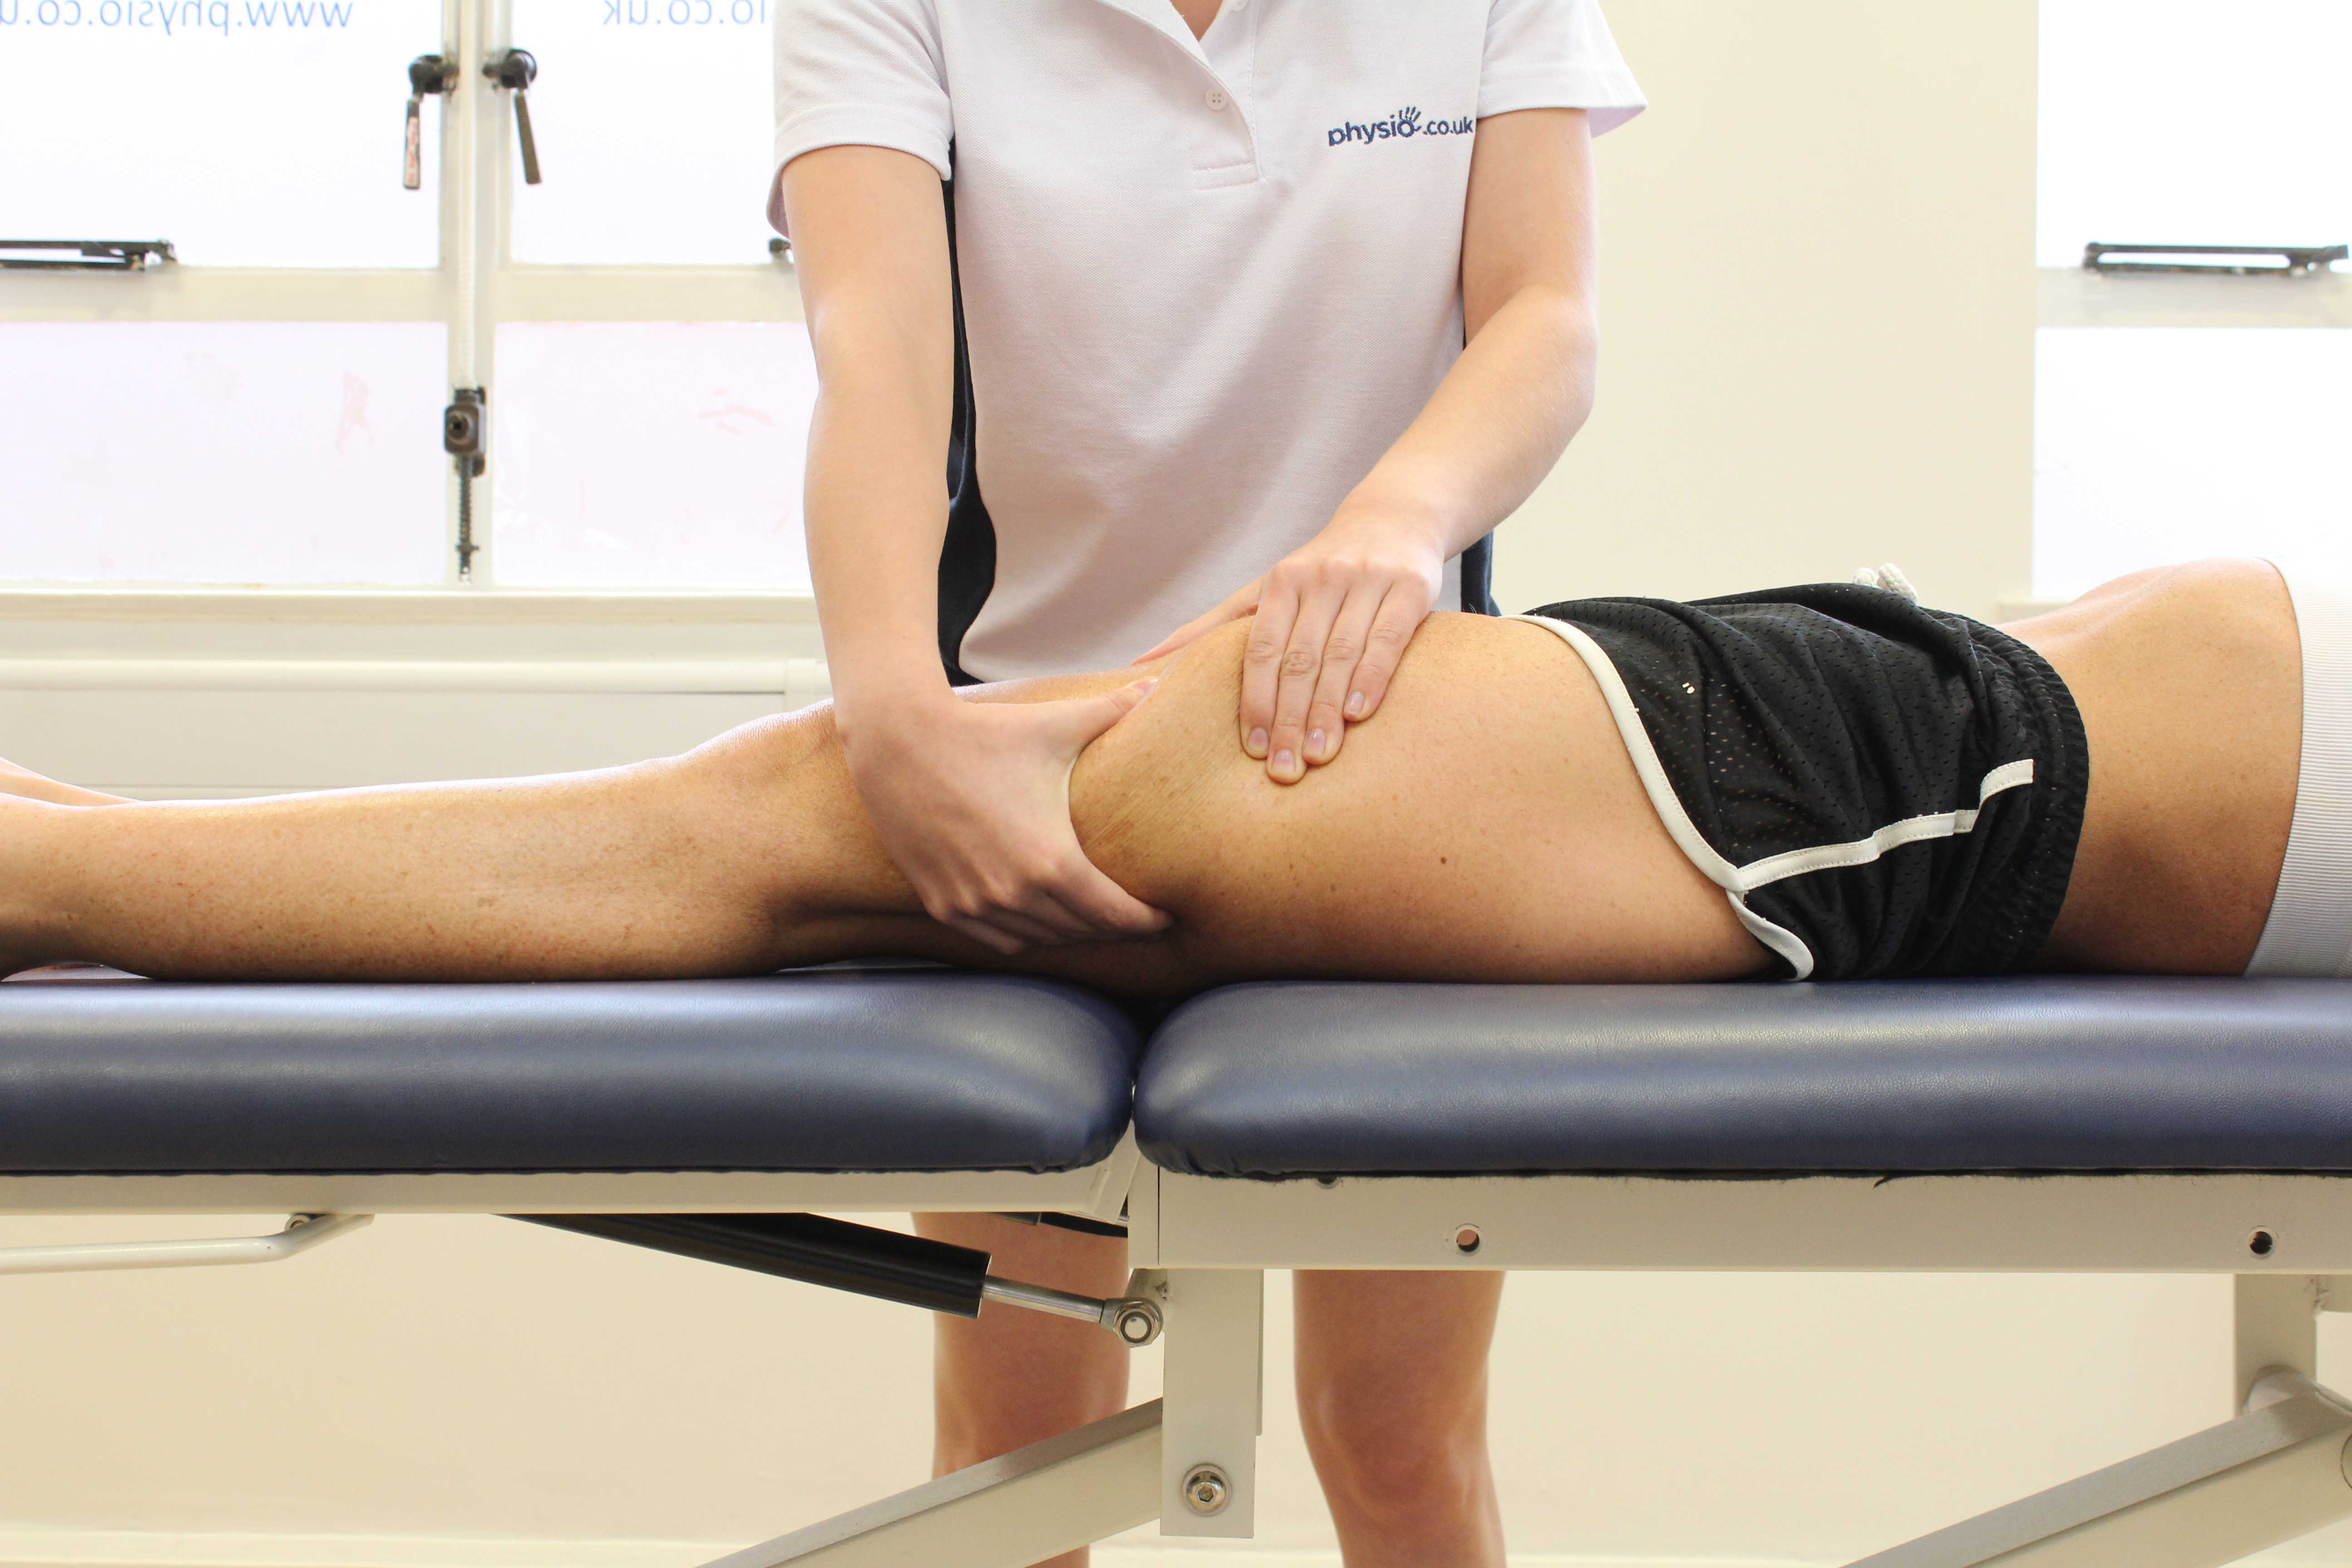 Rolling soft tissue massage of the quadricep muscles by an experienced therapist